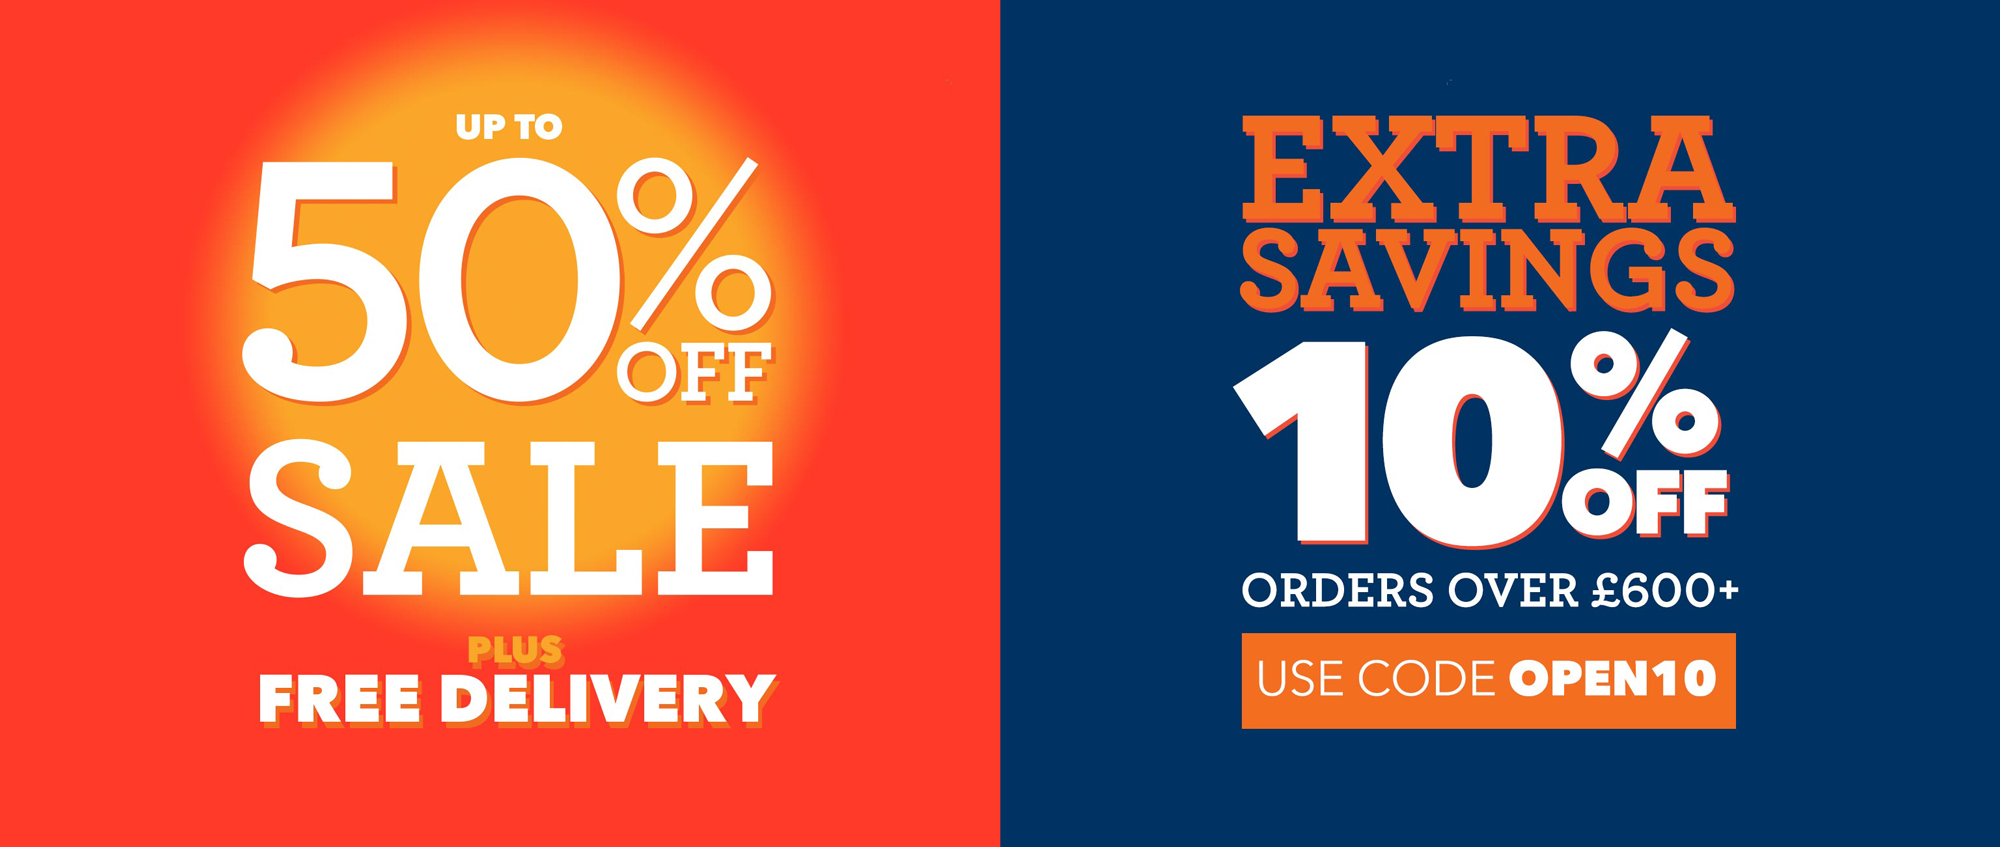 homepage - up 50% free delivery extra 10 - code OPEN10